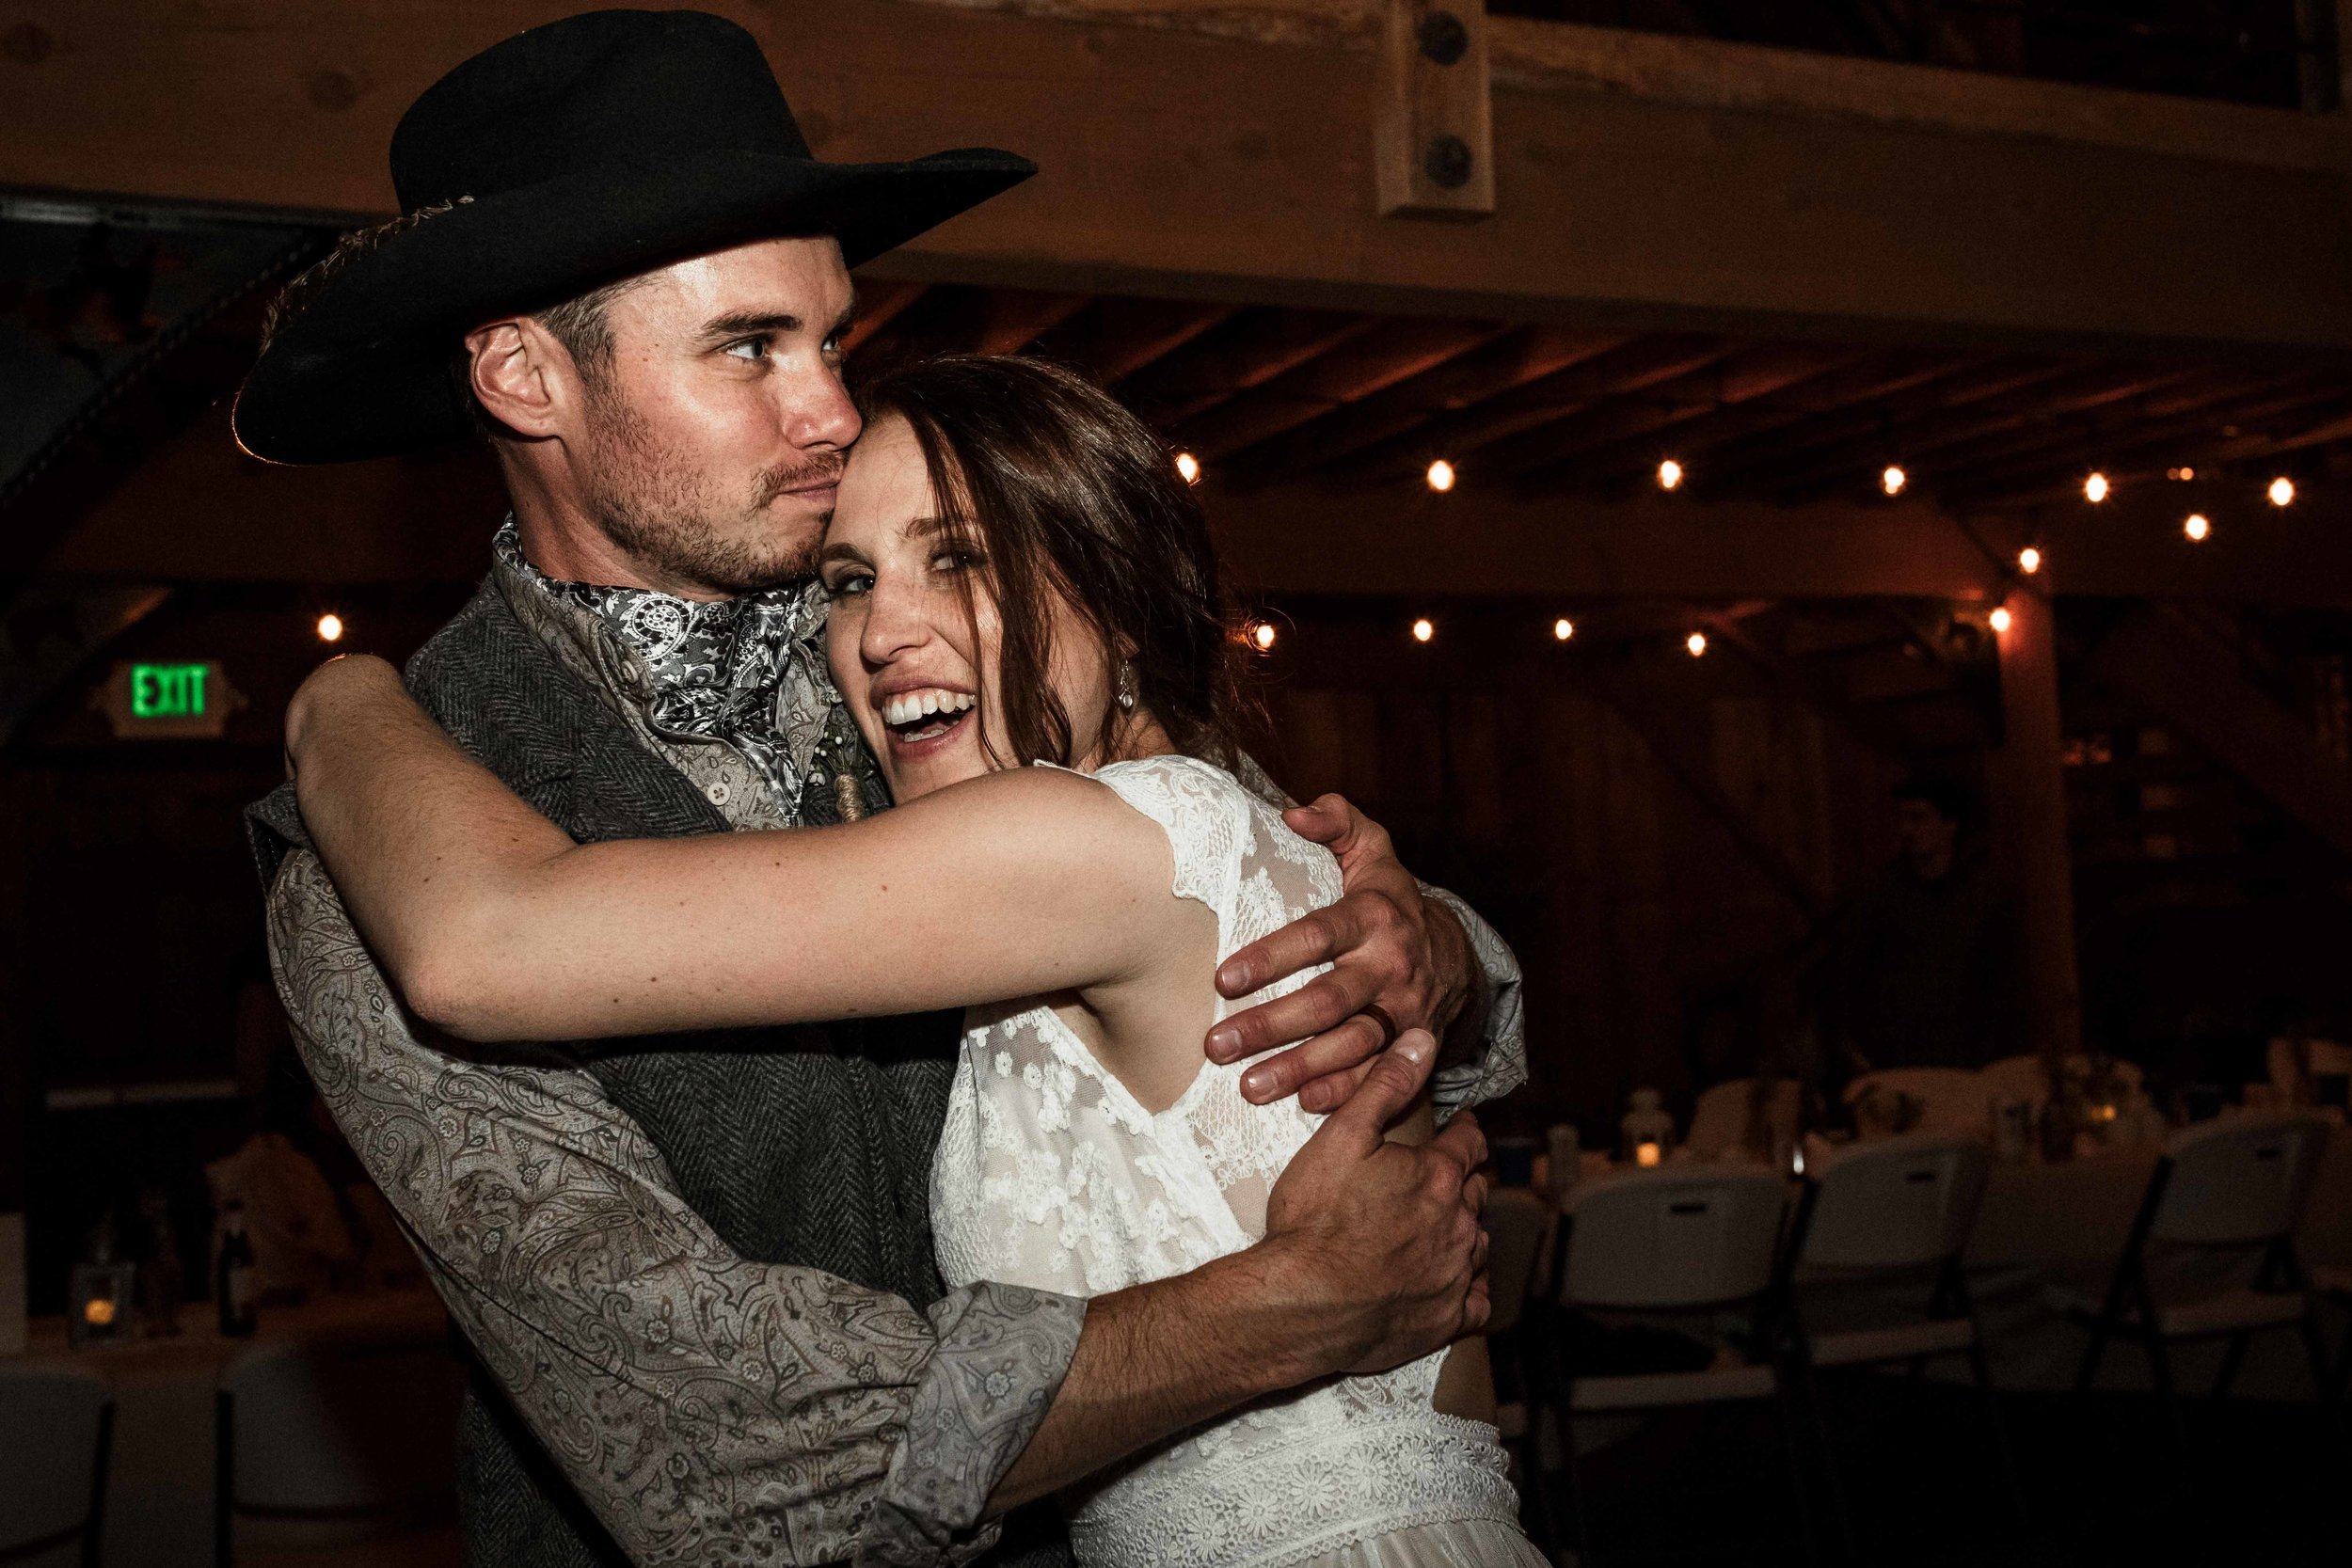 the-cattle-barn-wedding-90.jpg